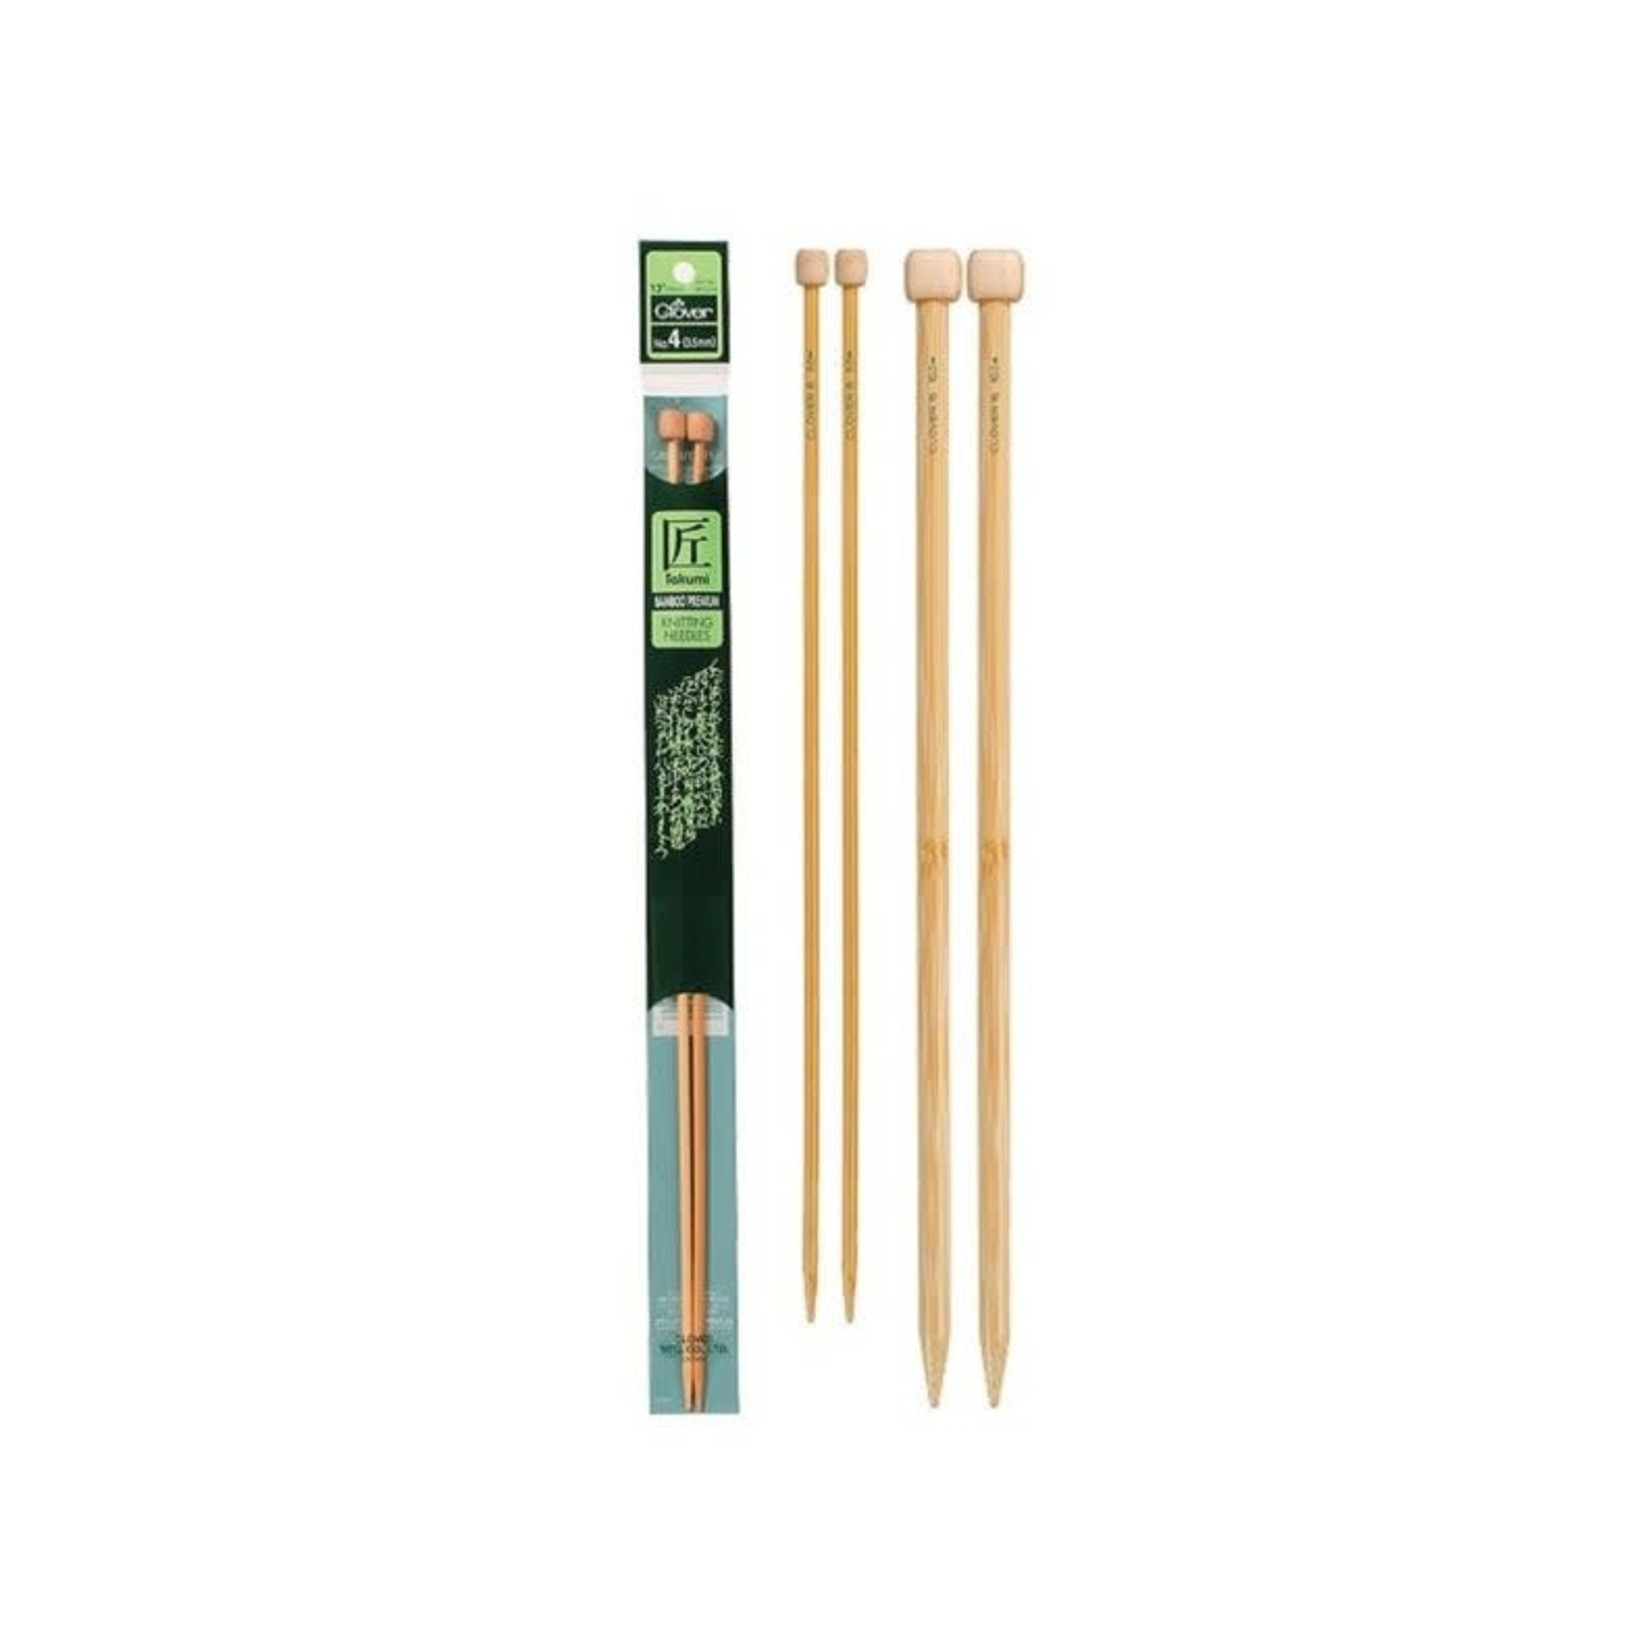 Clover Takumi Bamboo Single Point 23cm (9″) Knitting Needles by Clover